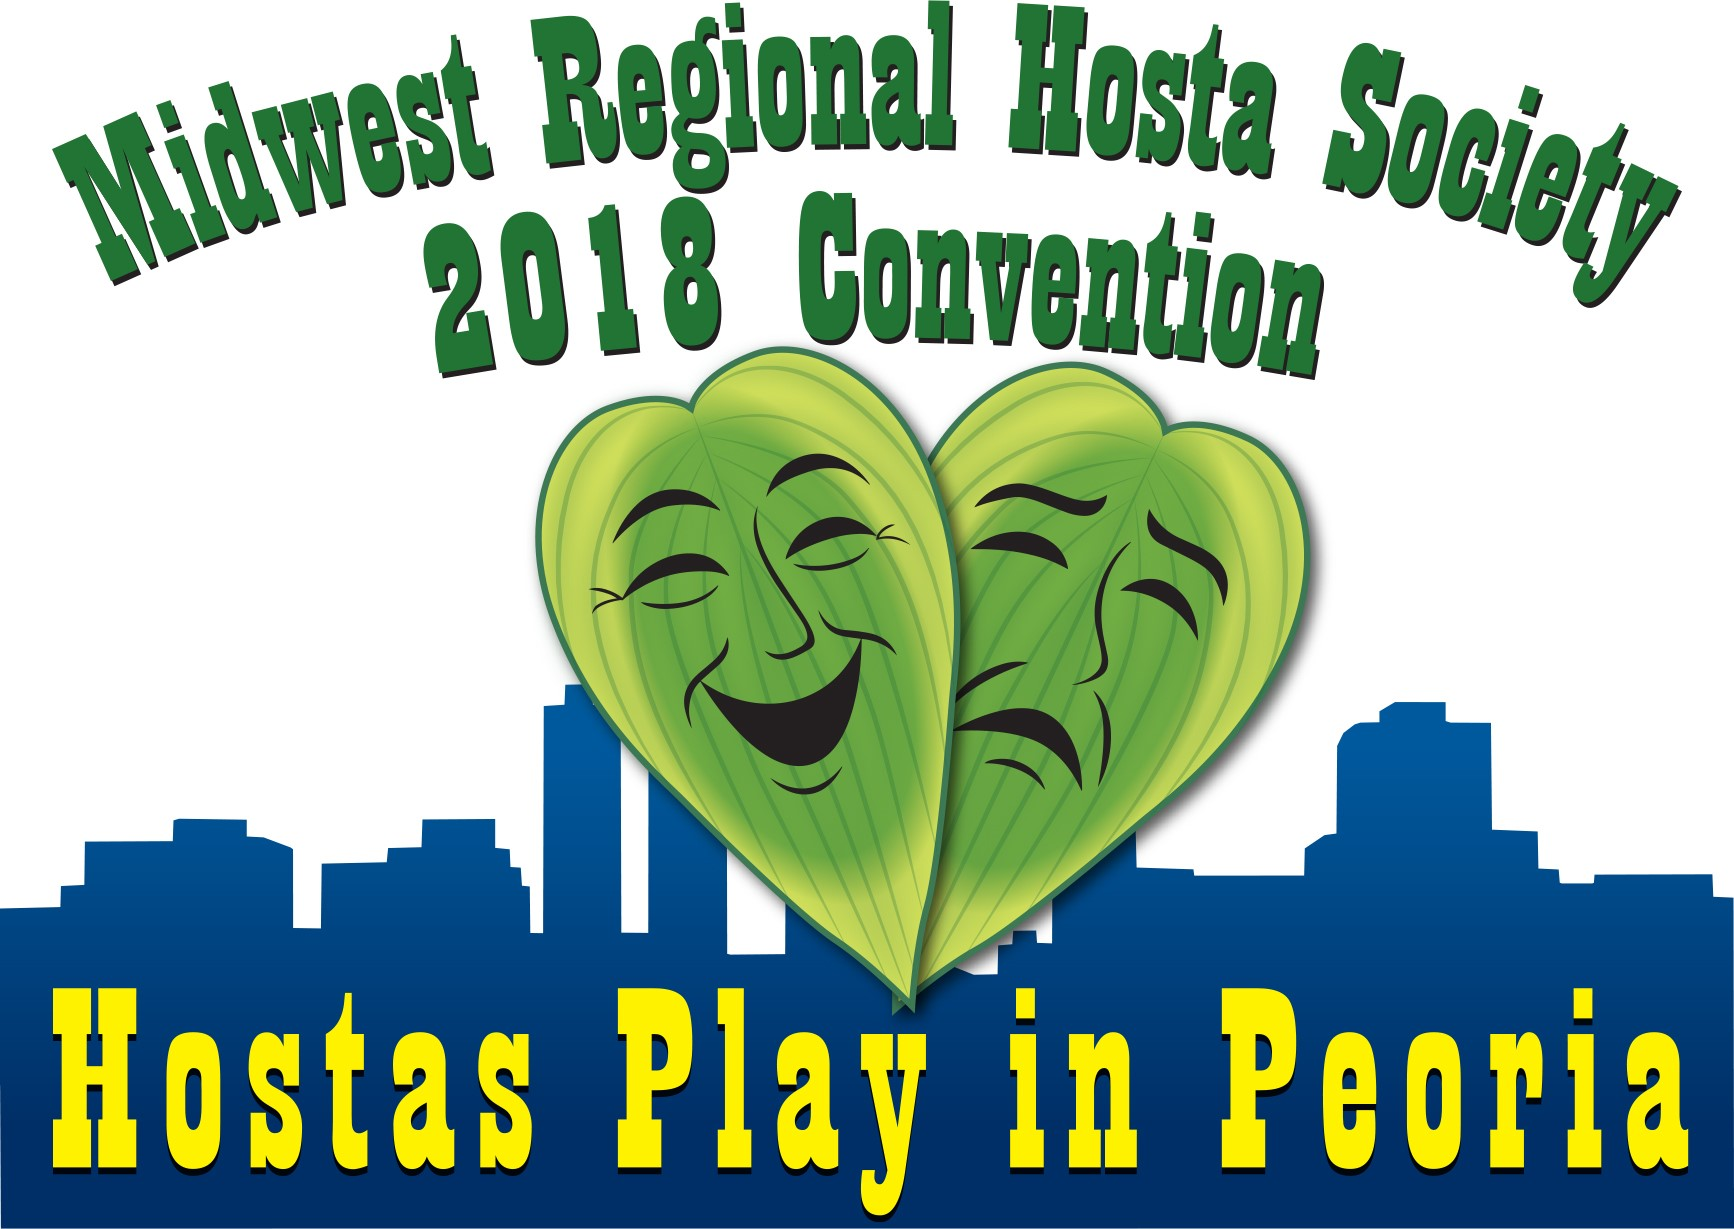 midwest regional hosta society peoria convention page